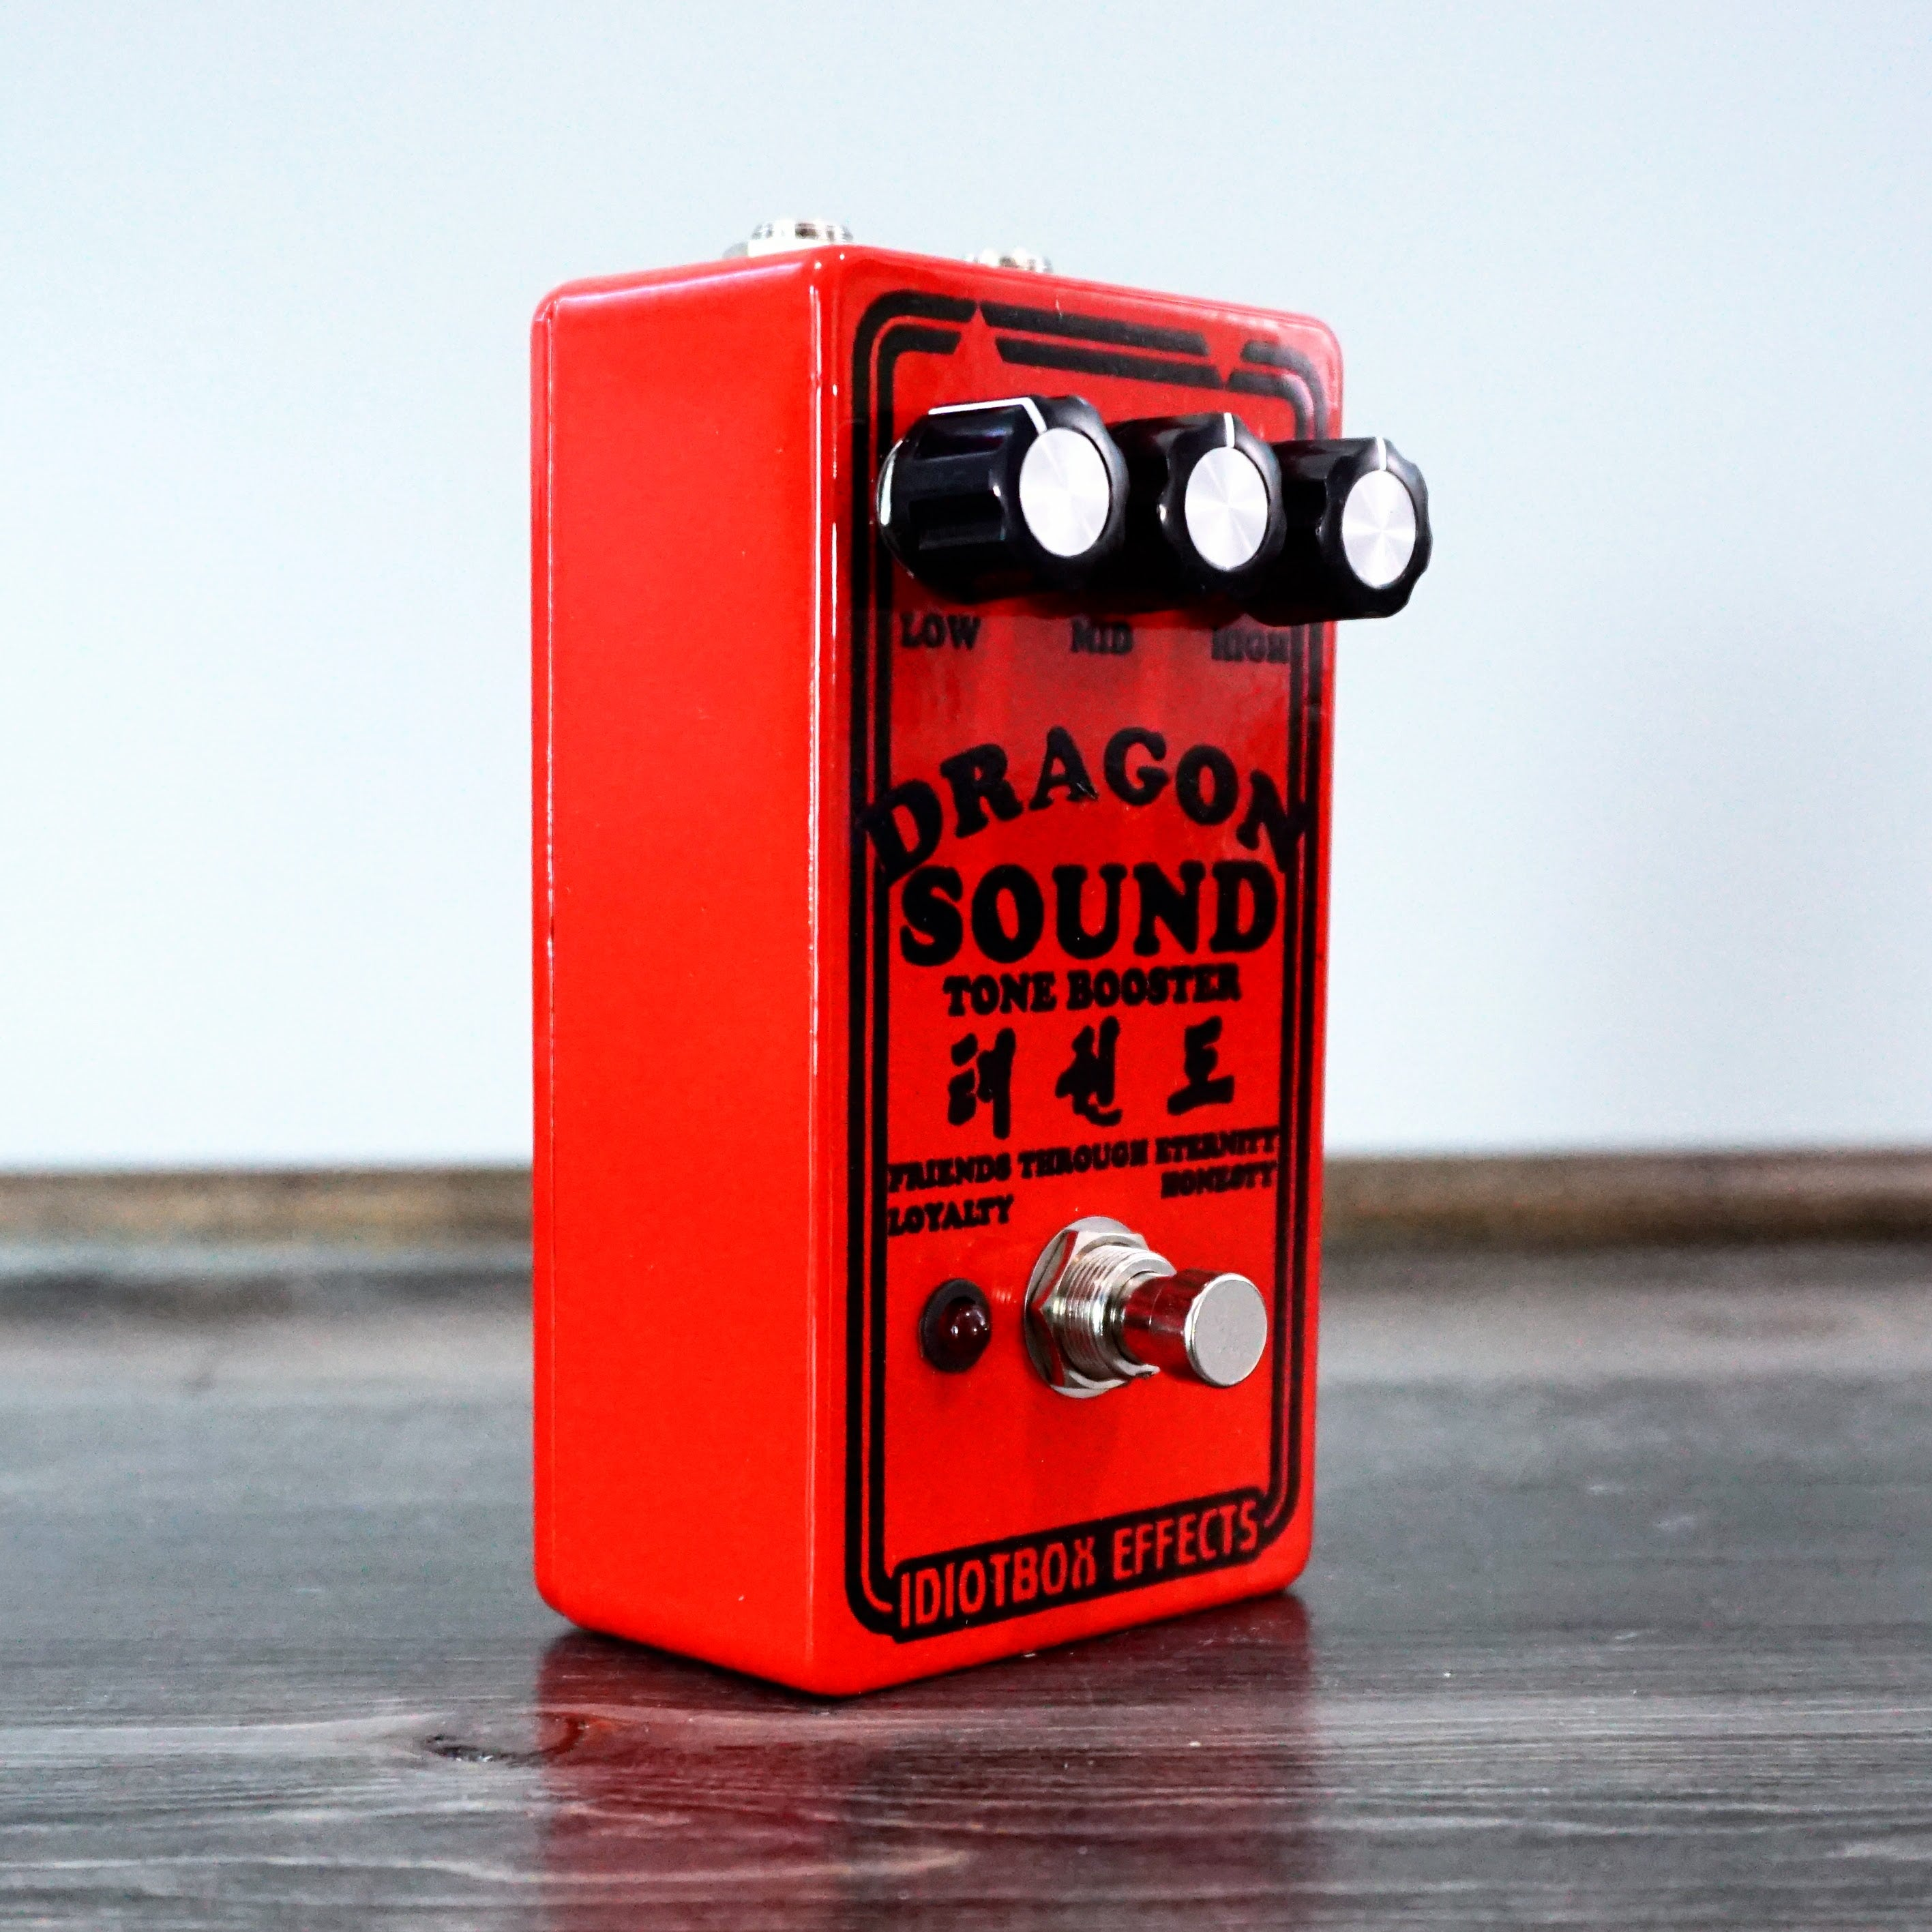 Idiotbox Effects Dragon Sound Tone Booster - NathansGear.Co